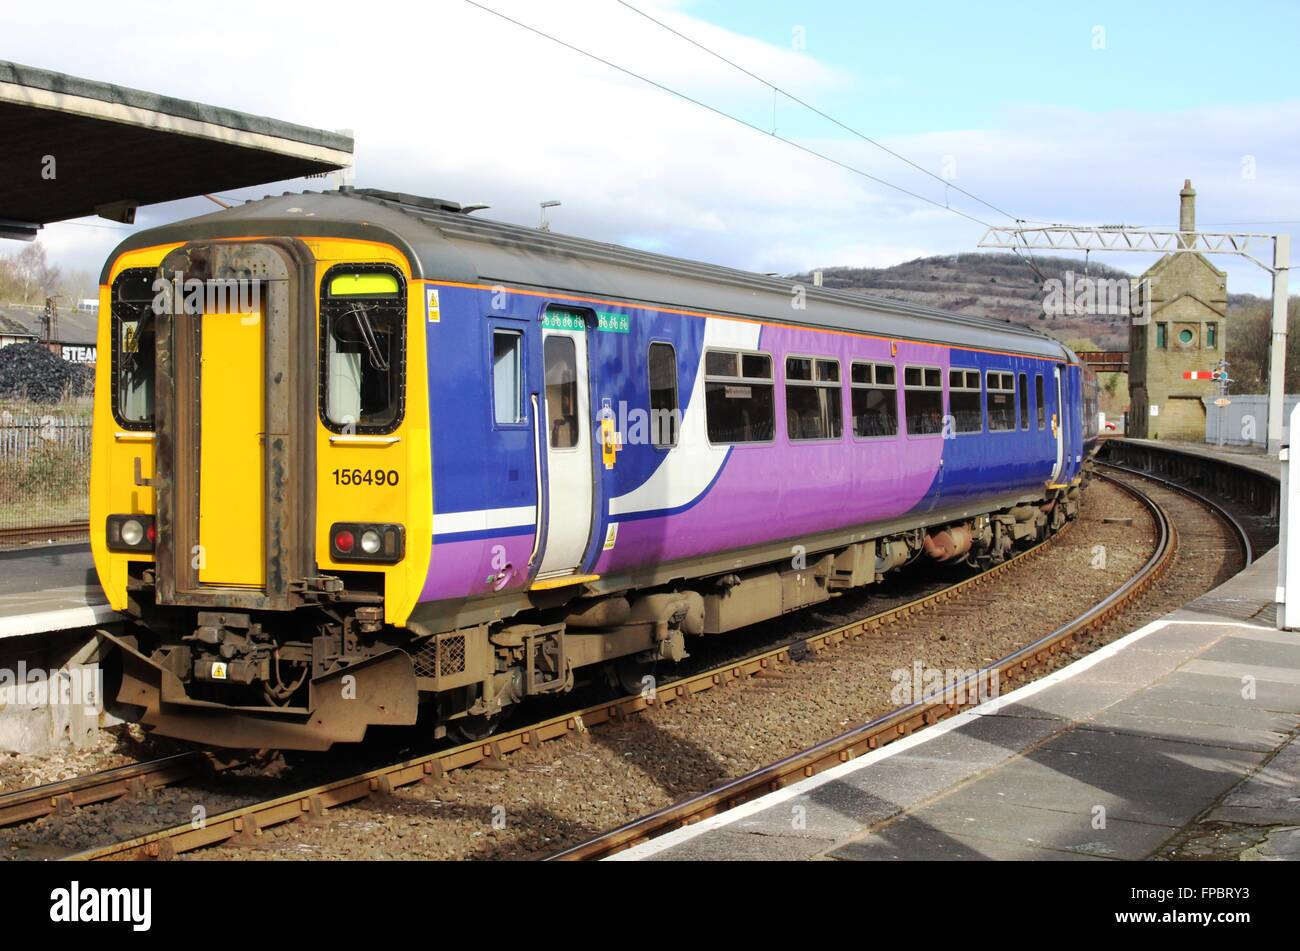 Class 156 diesel multiple unit in Northern livery without Northern branding ready for change of livery for new franchise. - Stock Image